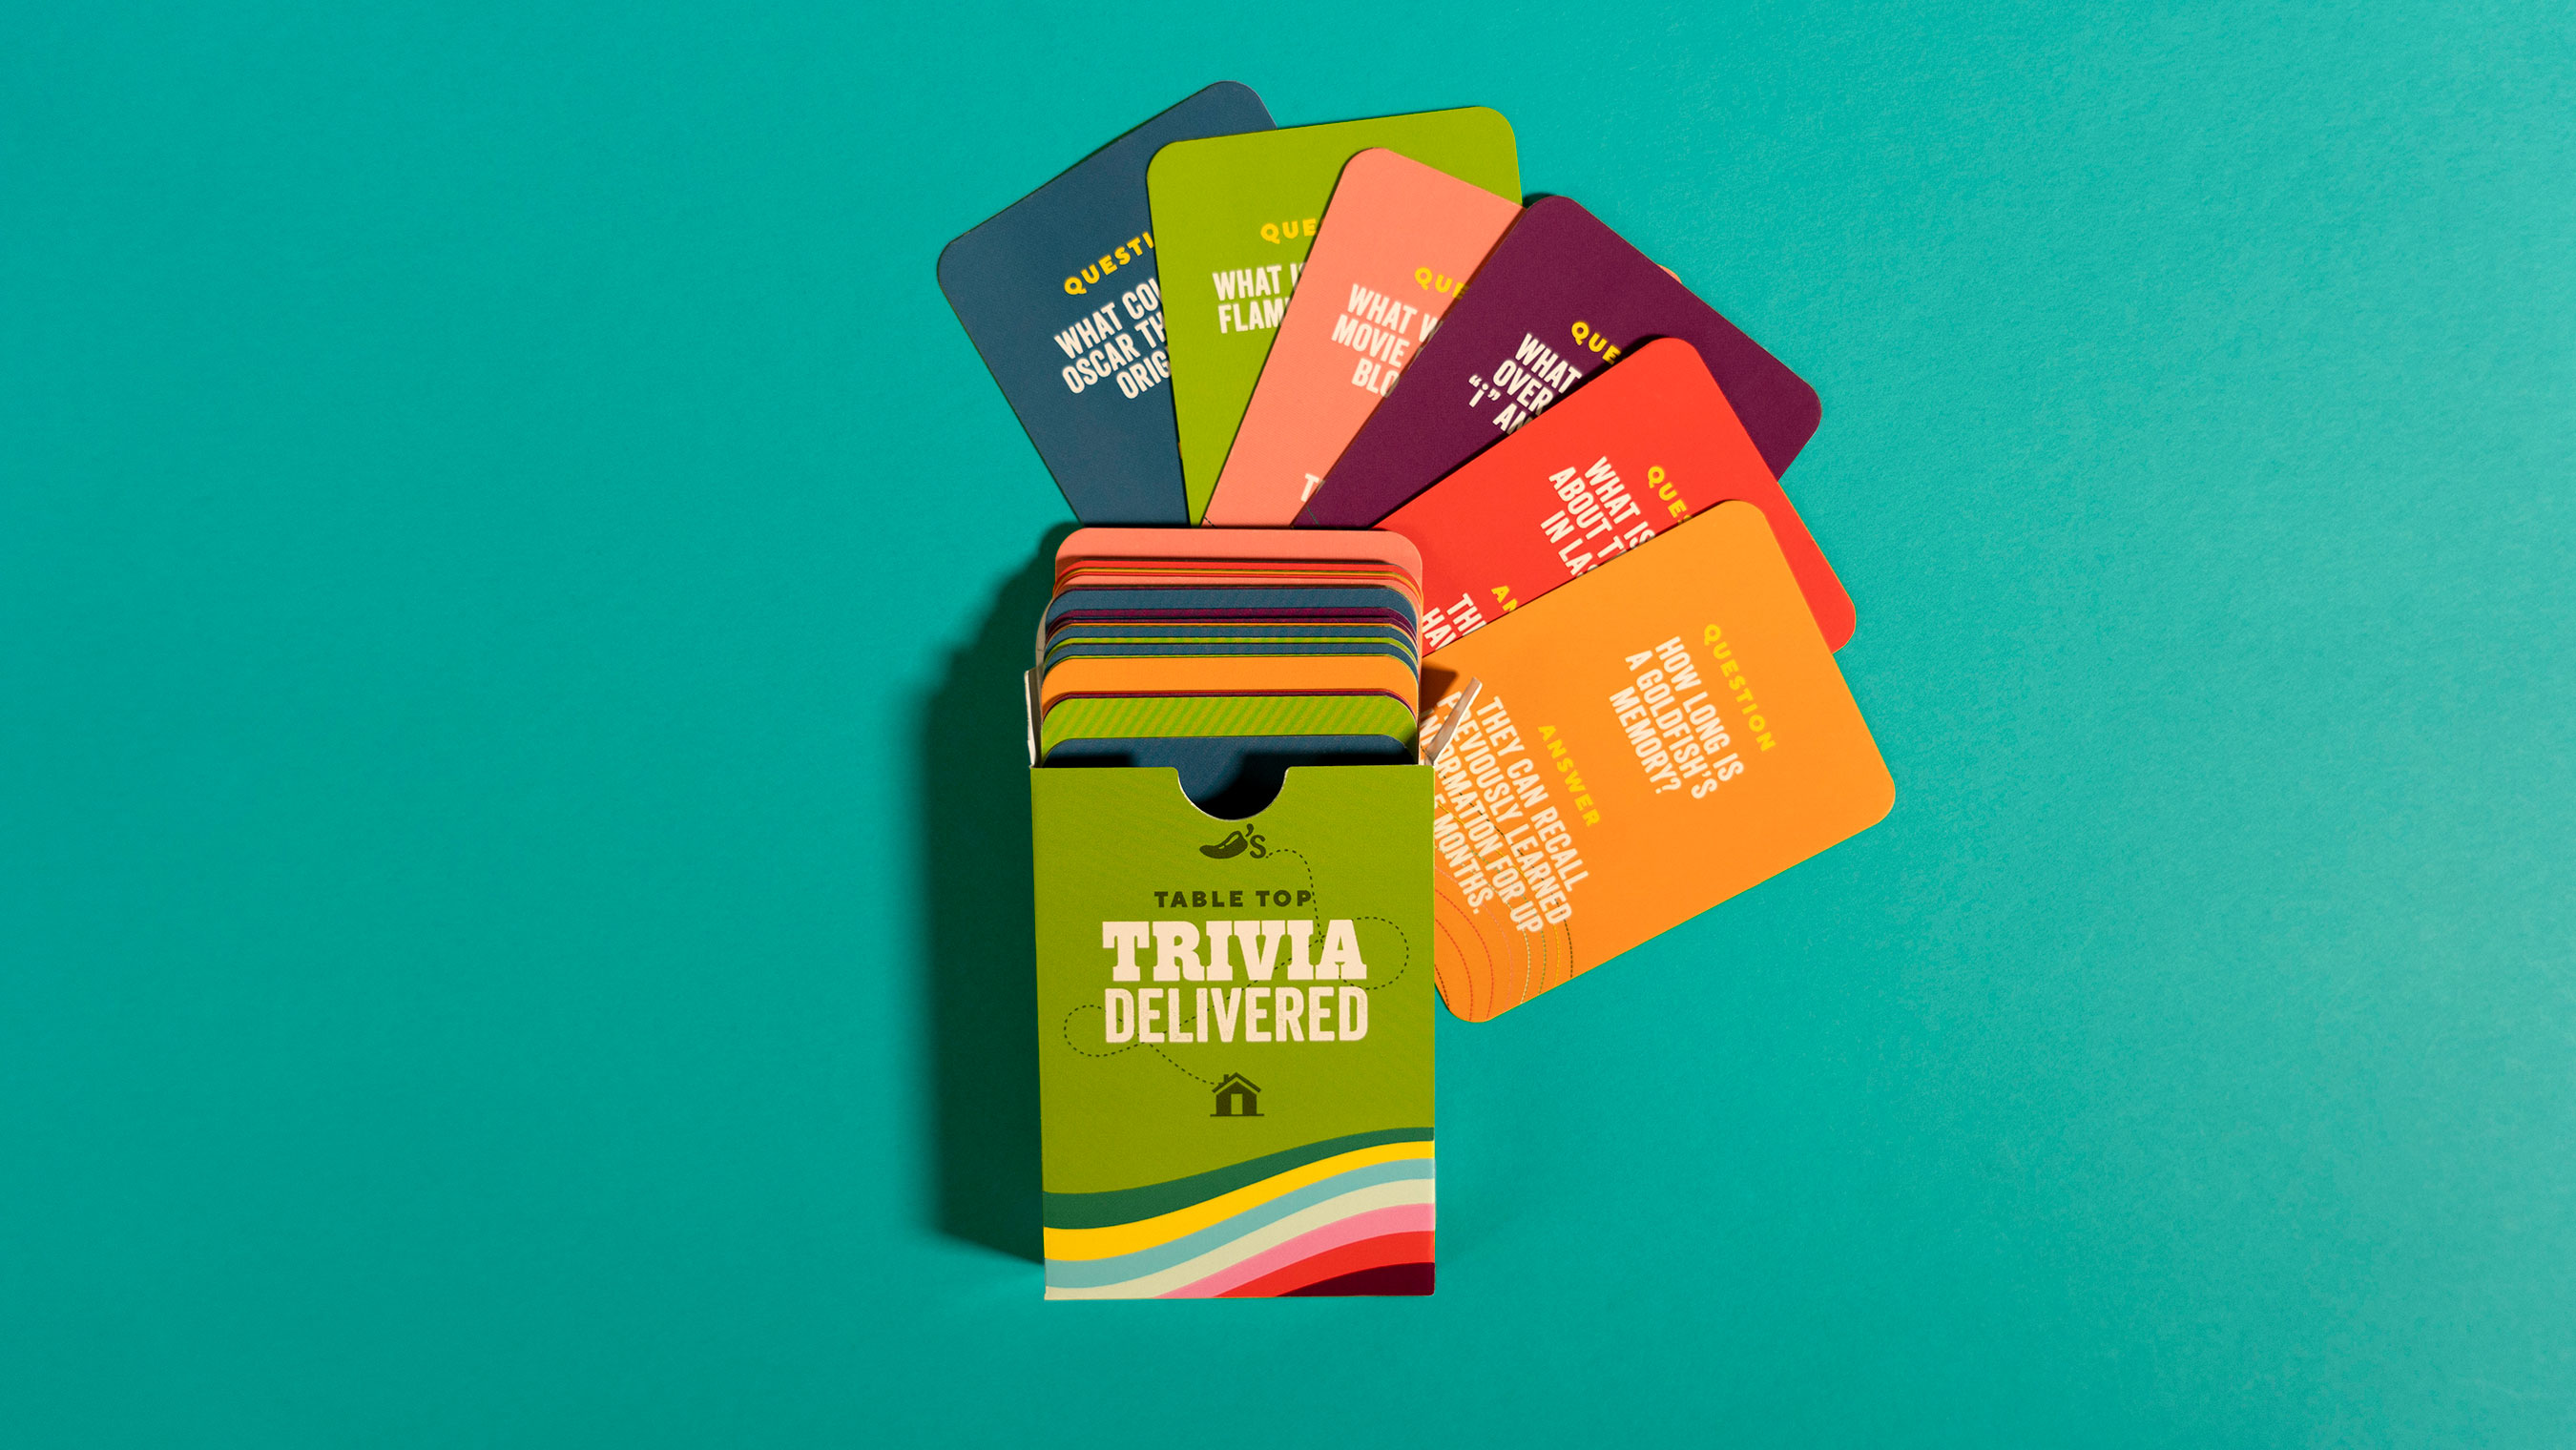 You can take the magic of useless knowledge with you anywhere and everywhere with these pocket-size trivia cards. Your relationships are sure to improve thanks to this game.